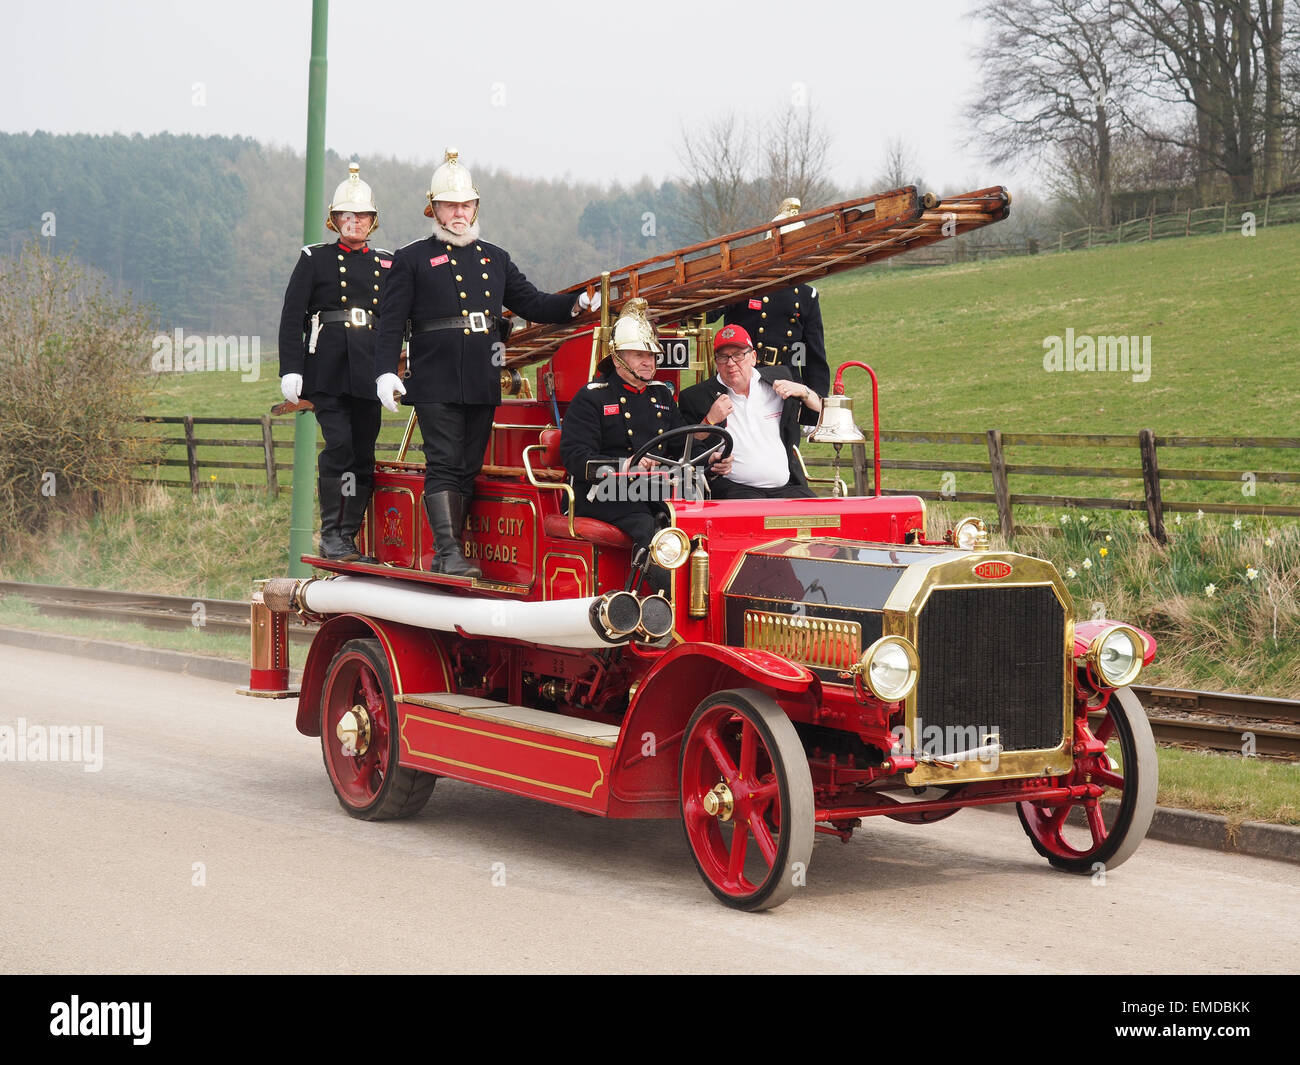 A vintage fire engine from the early 20th century being demonstrated at the Beamish Open Air Museum in Co. Durham. Stock Photo